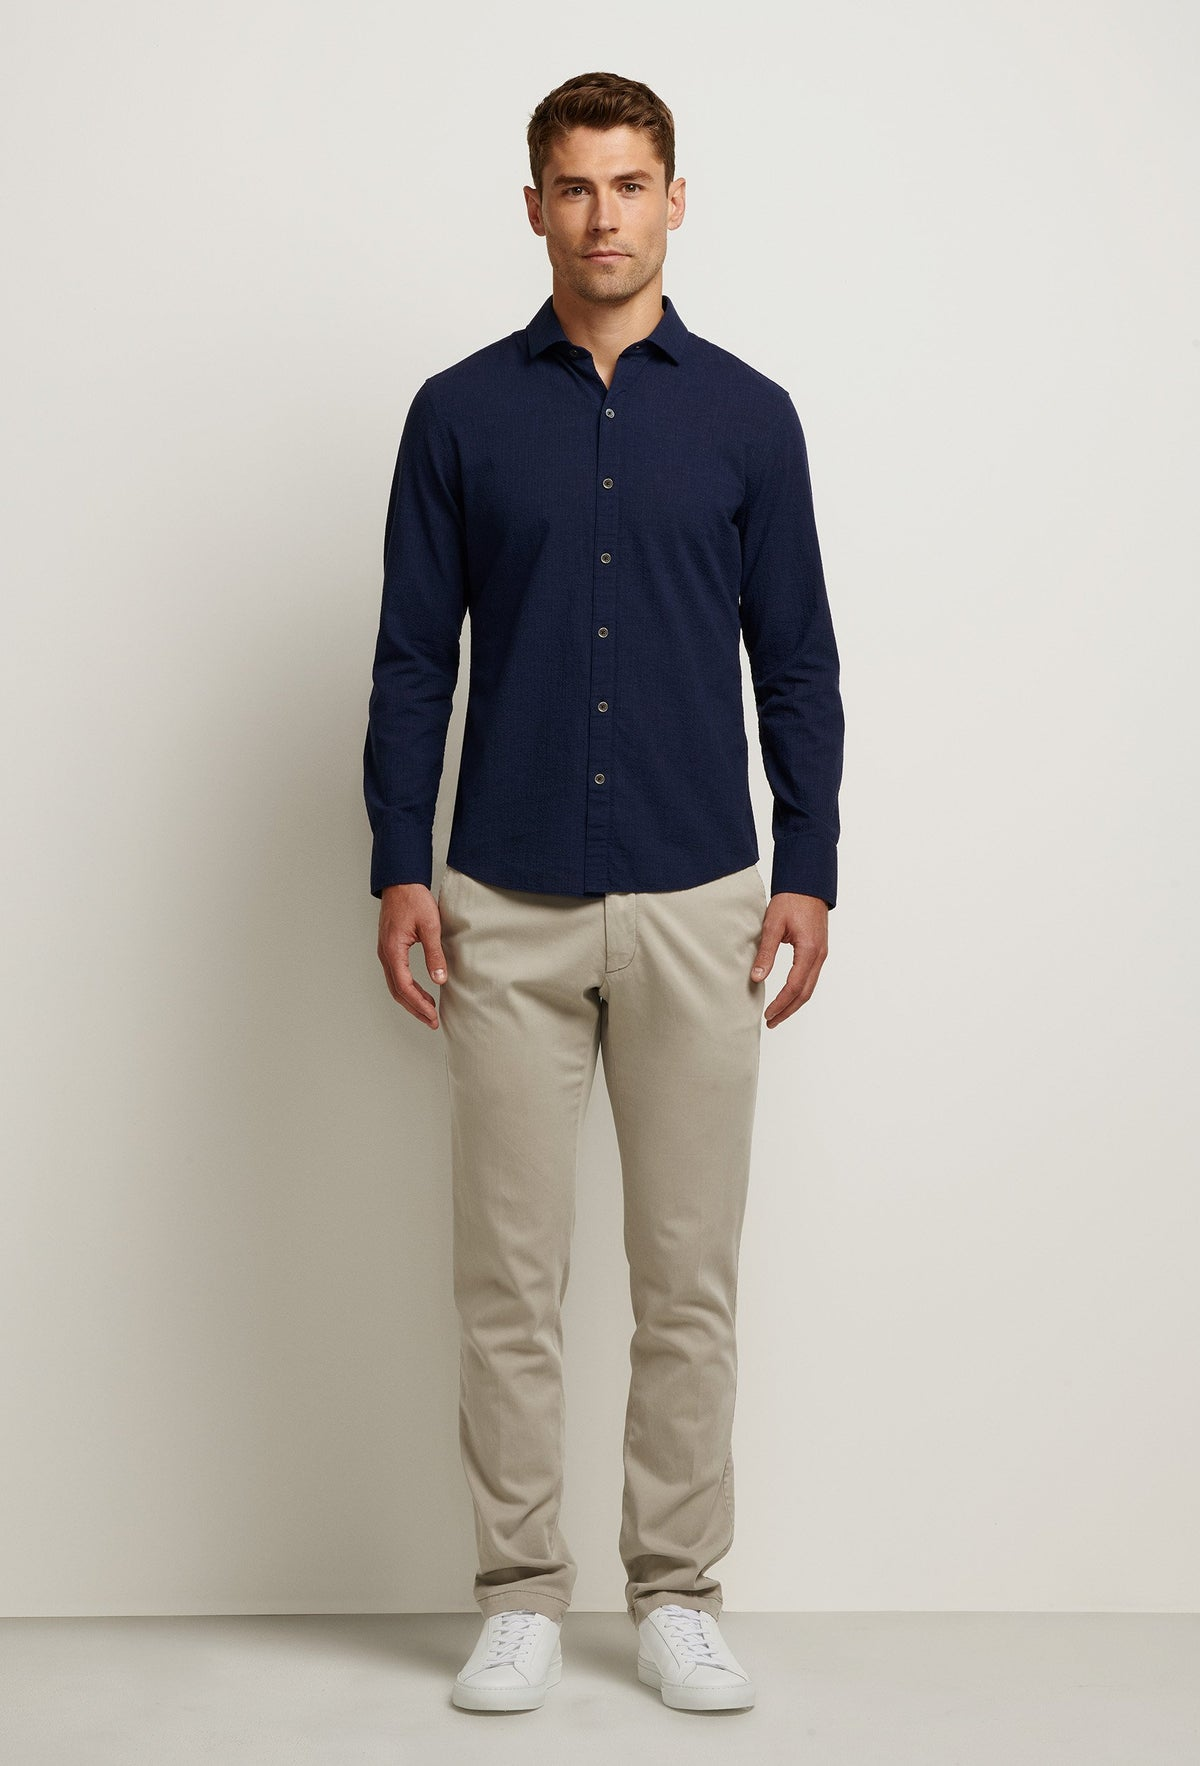 navy blue seersucker shirt long sleeve button down